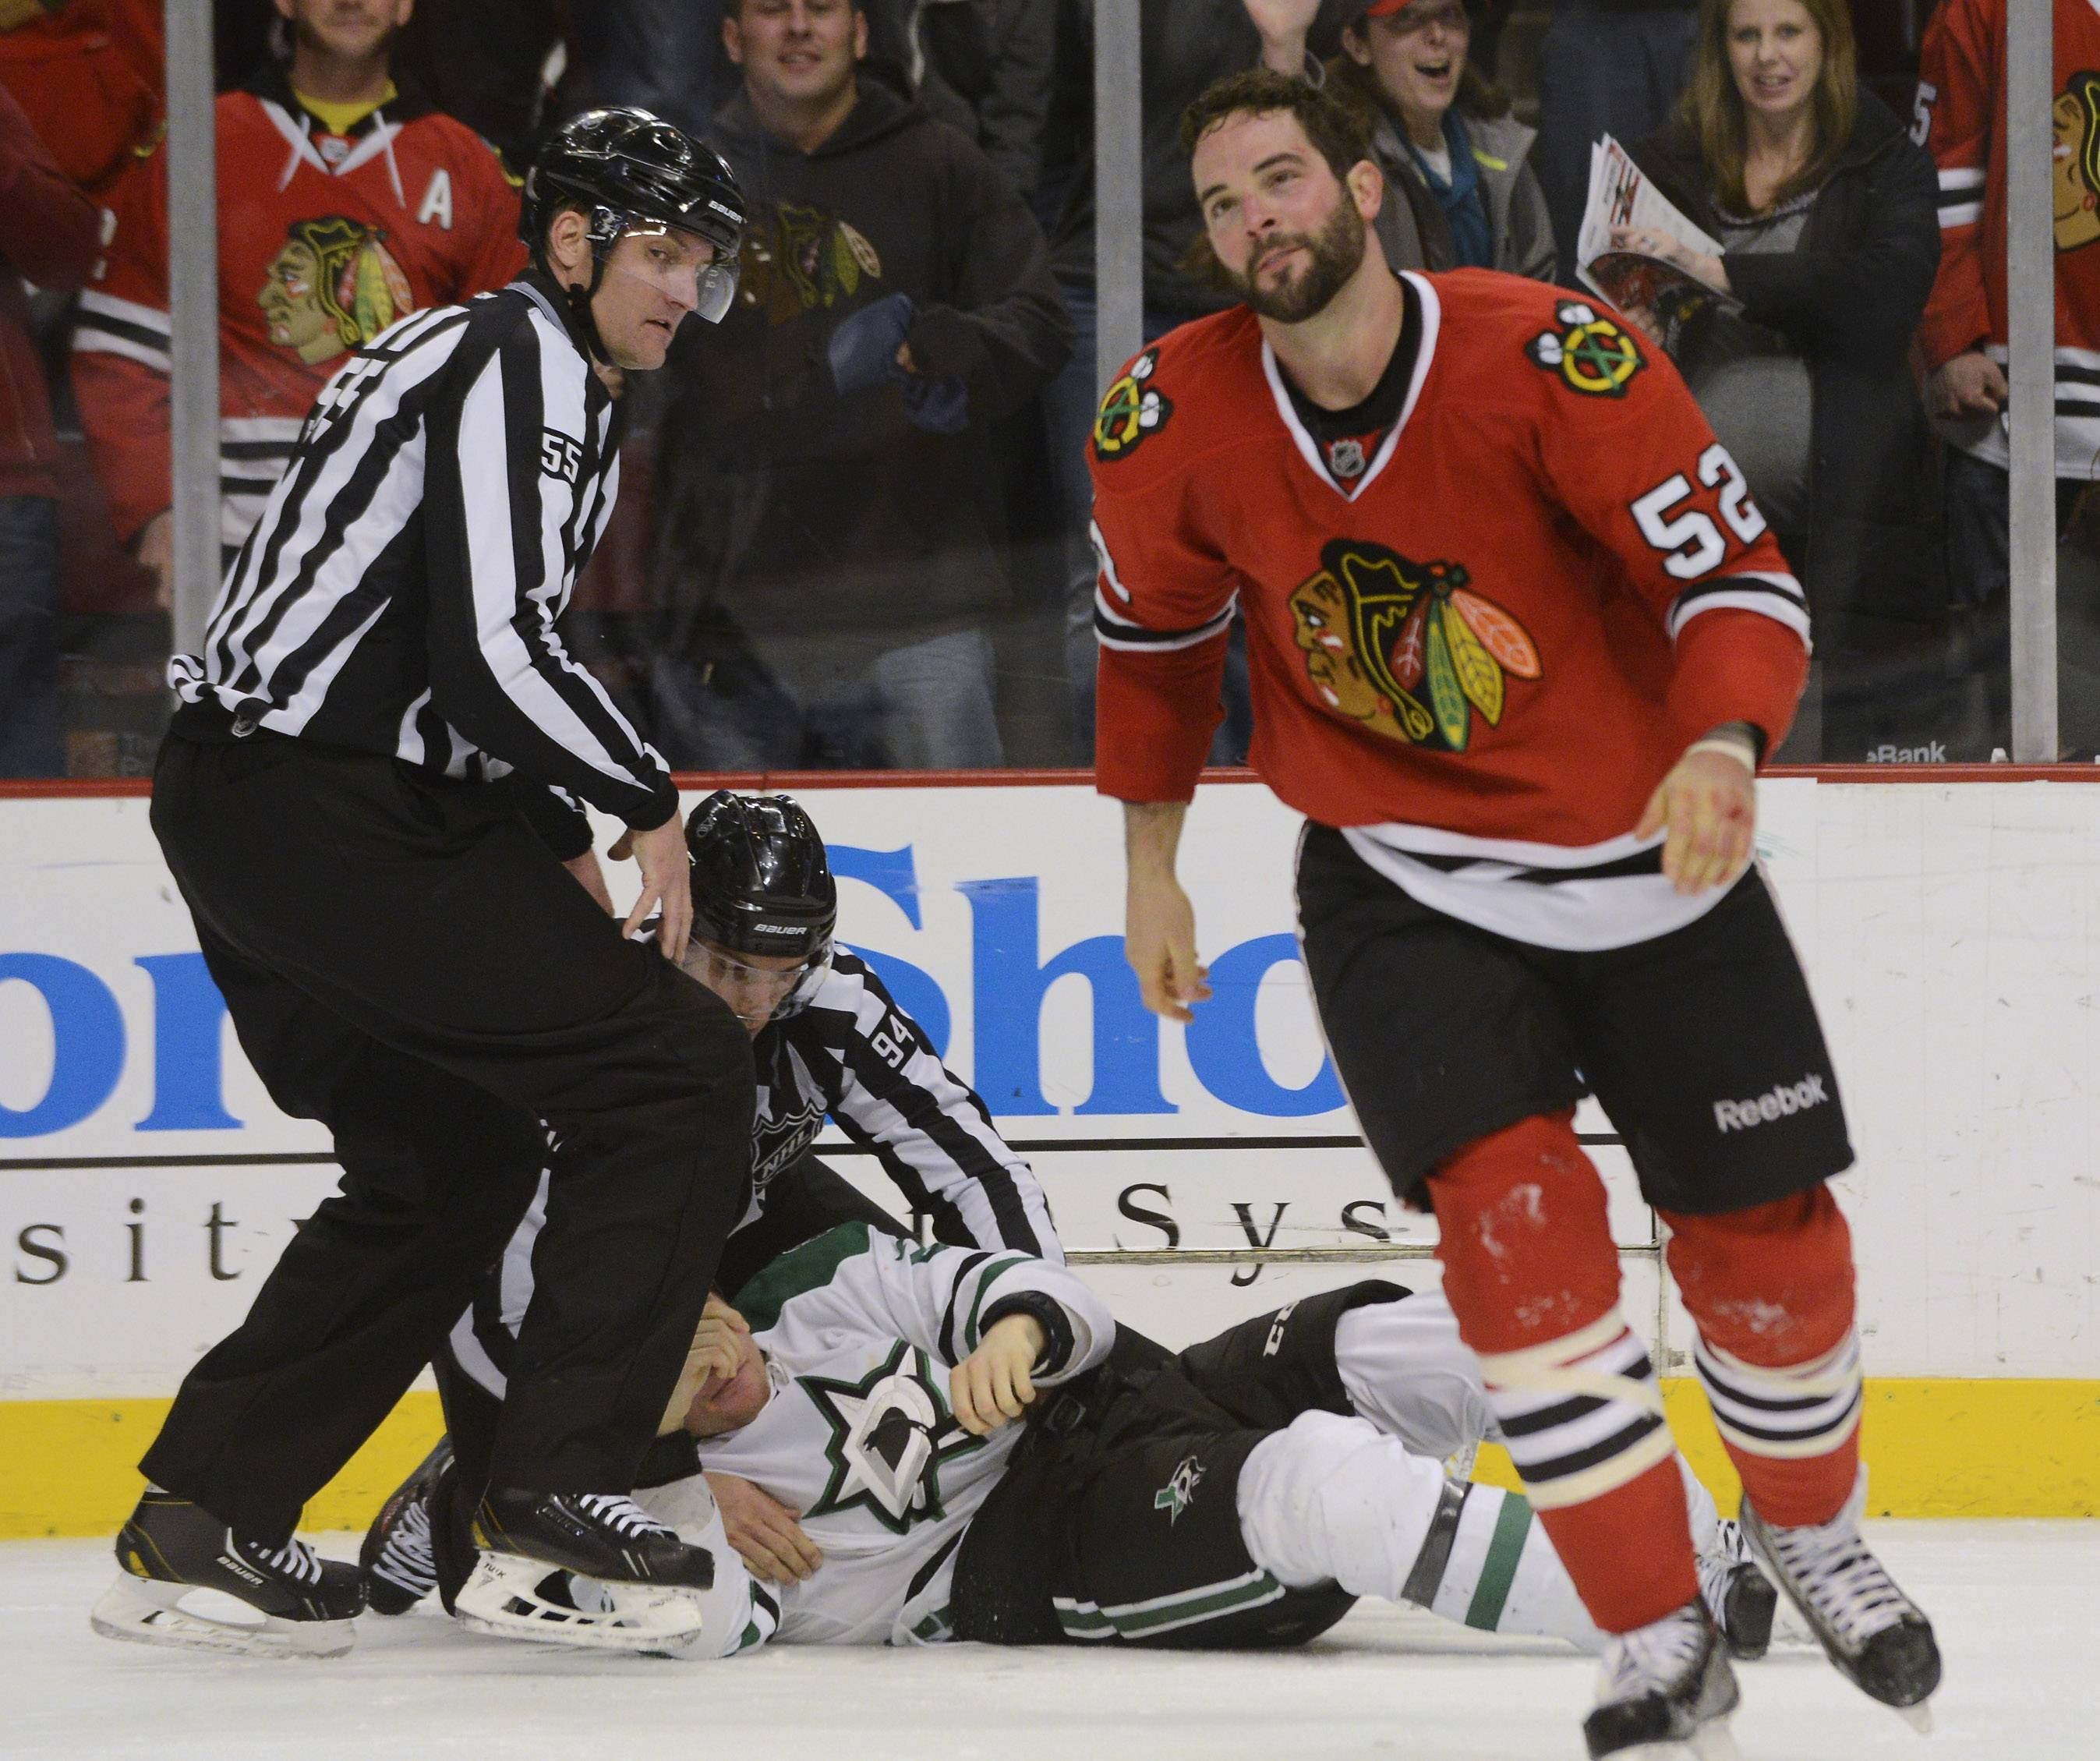 Brandon Bollig skates away after fighting Antoine Roussel of the Dallas Stars.